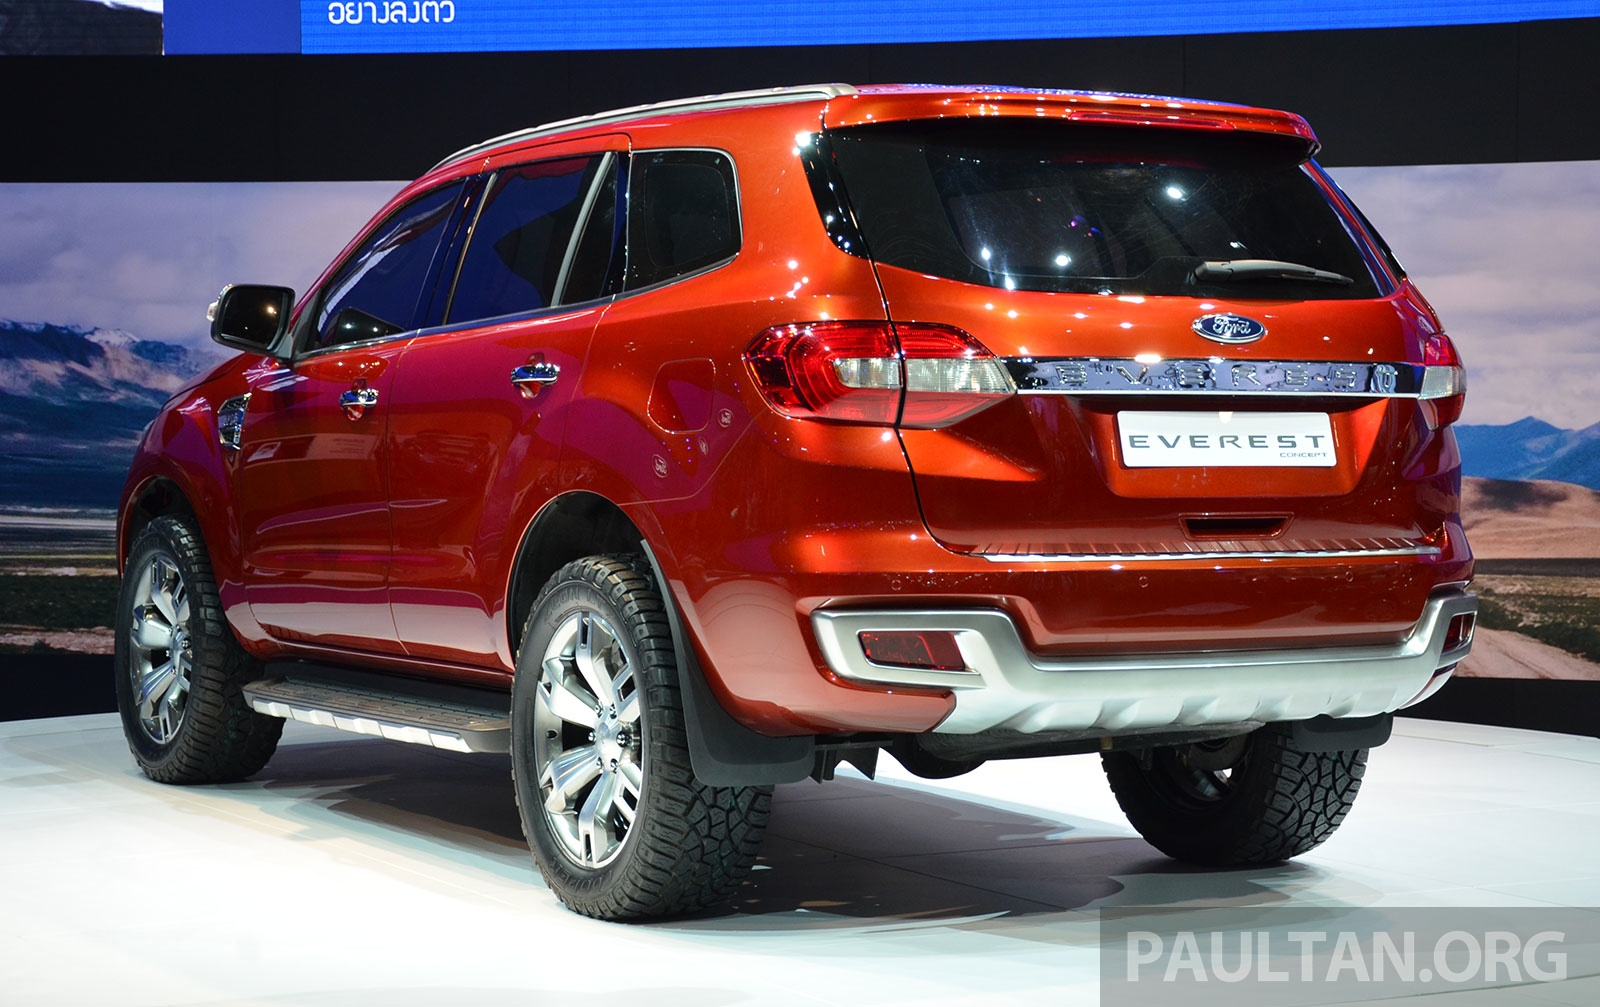 Ford Everest Concept unveiled at Bangkok Motor Show – production SUV